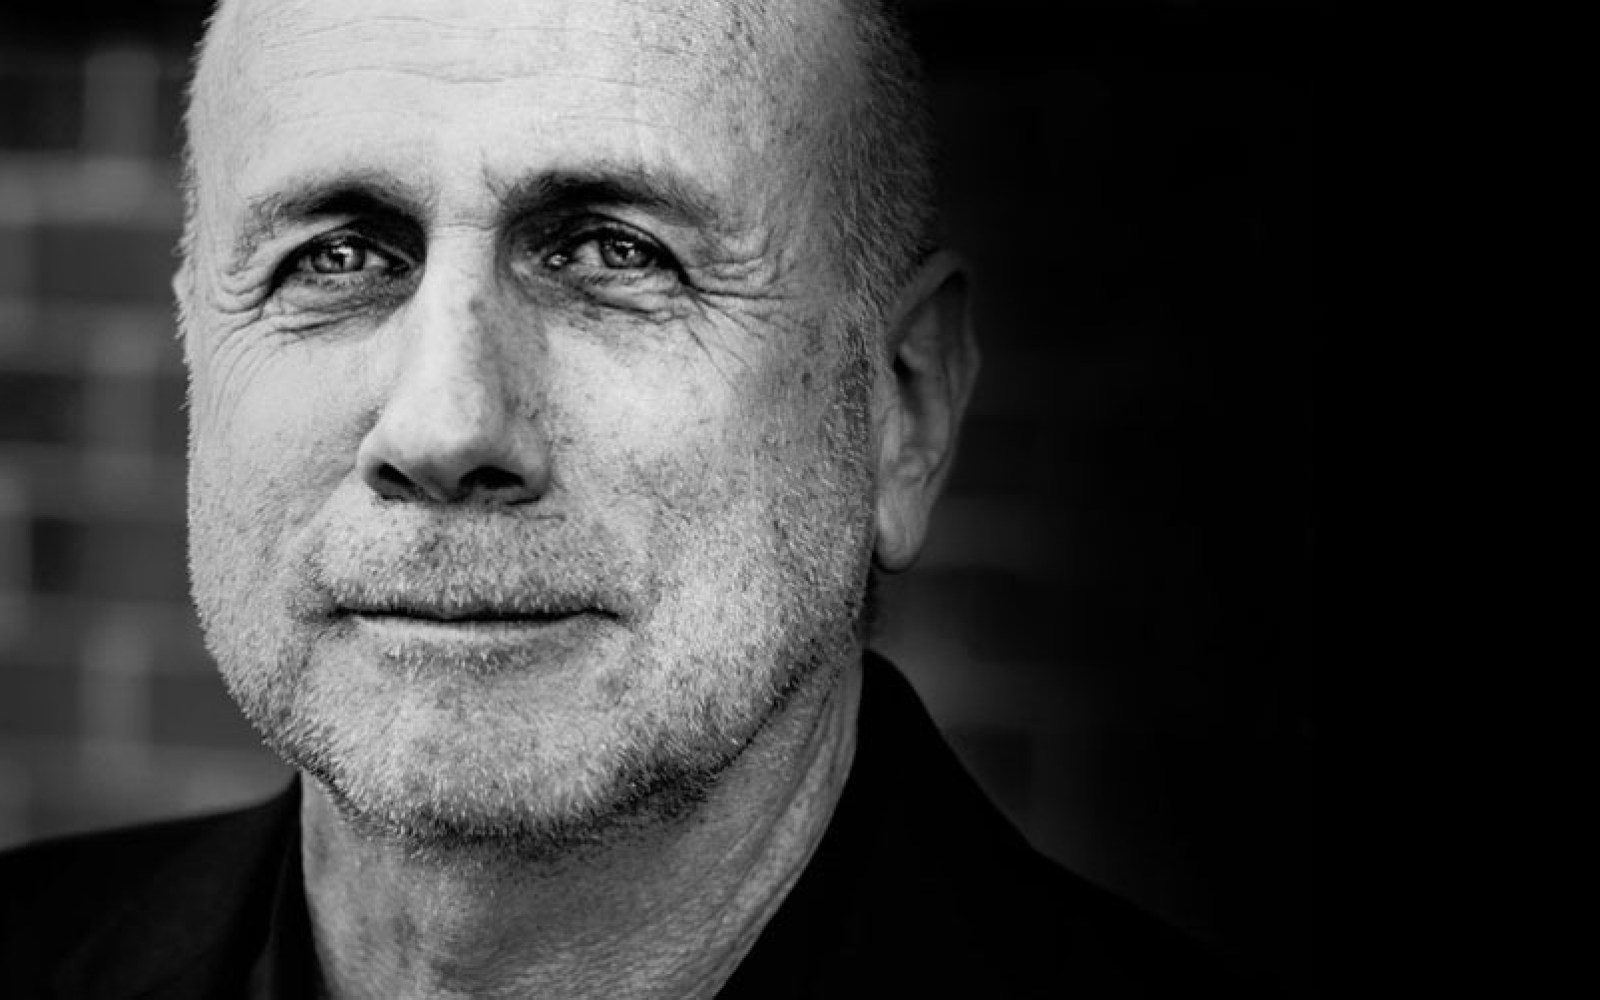 Former Apple ad guru Ken Segall says company is losing touch with its heritage of simplicity